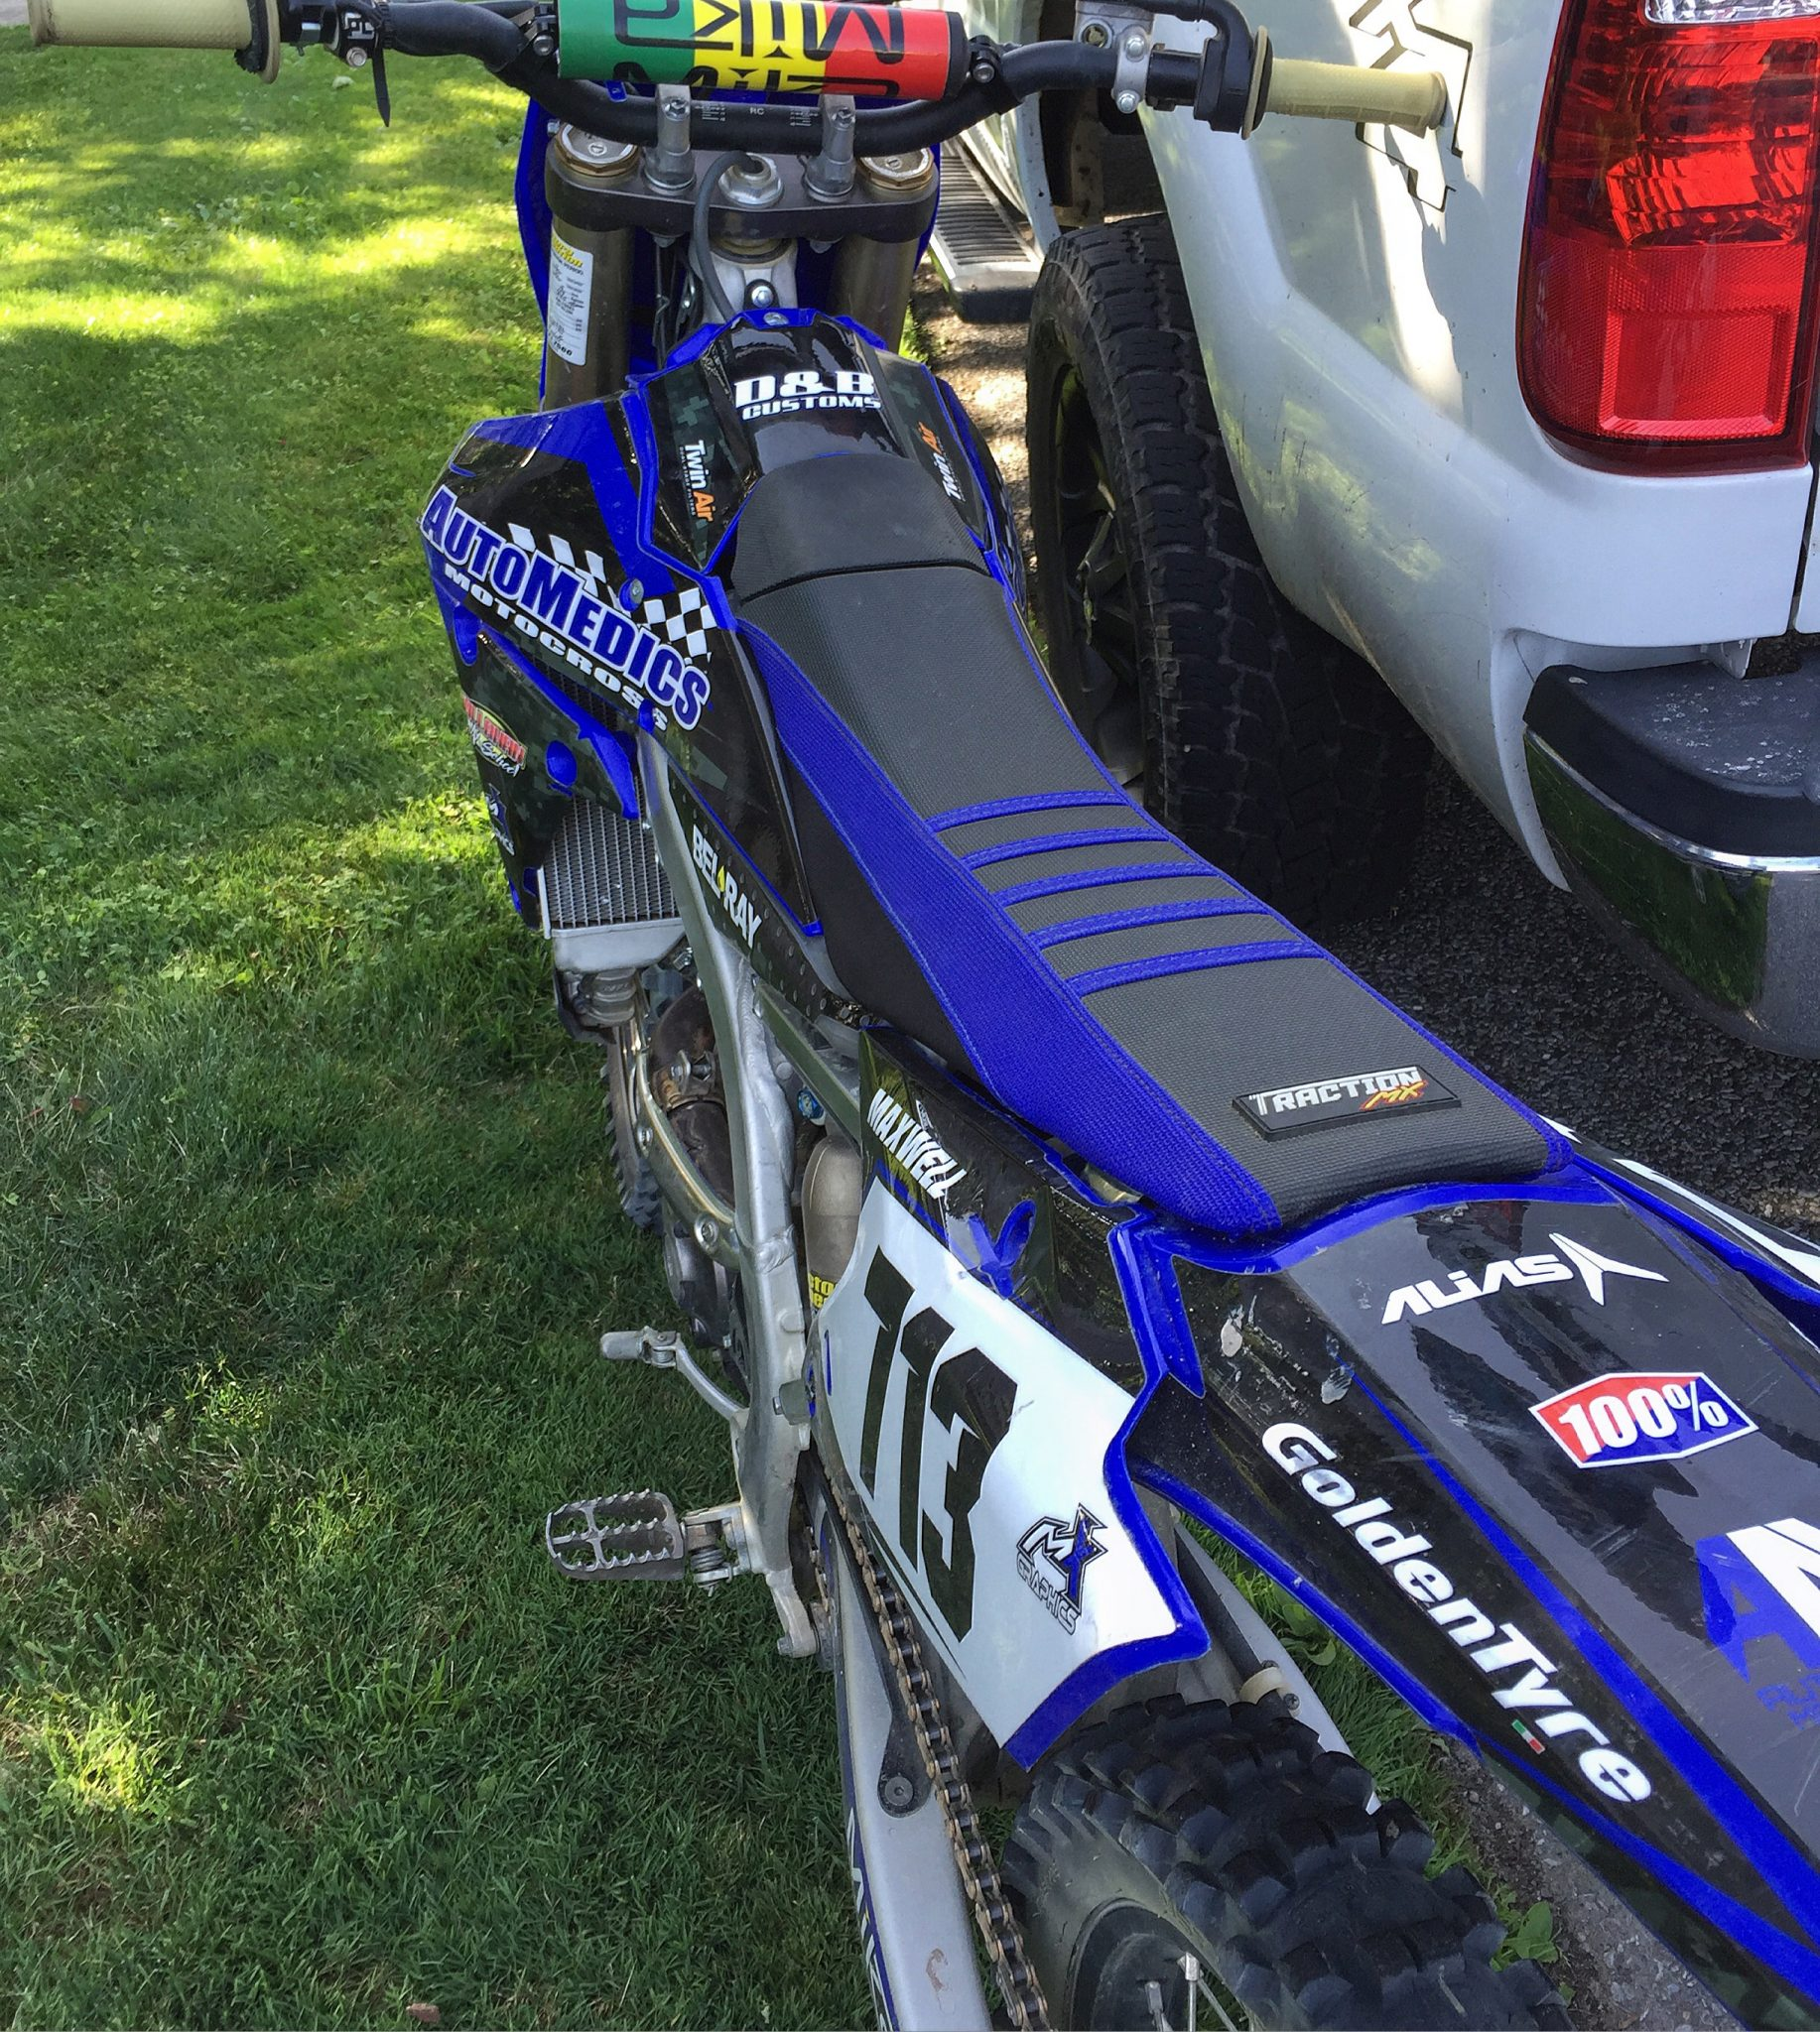 Yz 250 2019 >> MEDIA - Traction MX- Custom Gripper Seat Covers